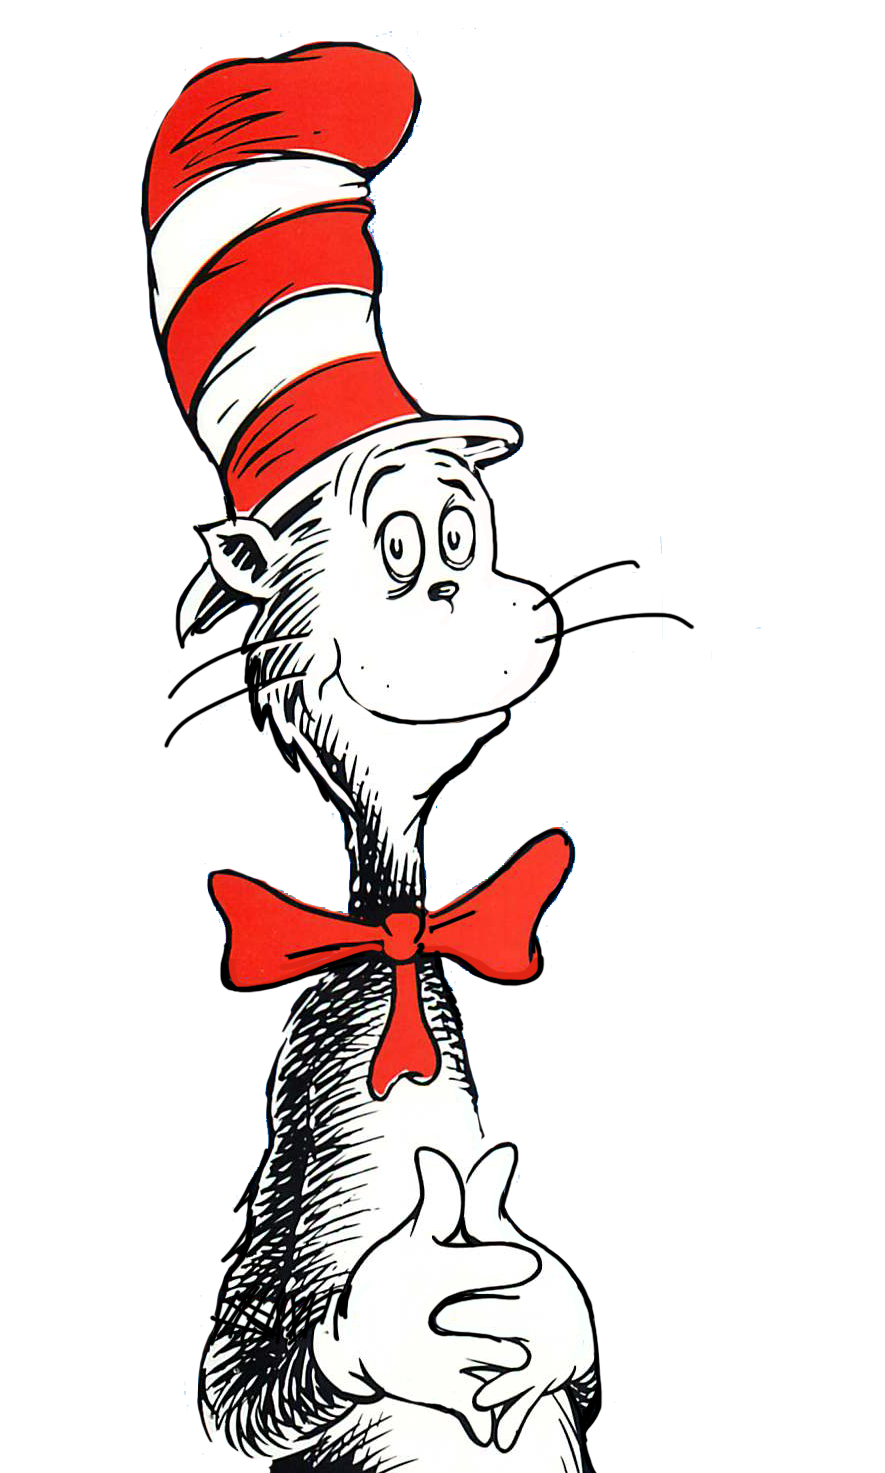 Dr Seuss The Cat In The Hat wallpapers Video Game HQ 885x1473